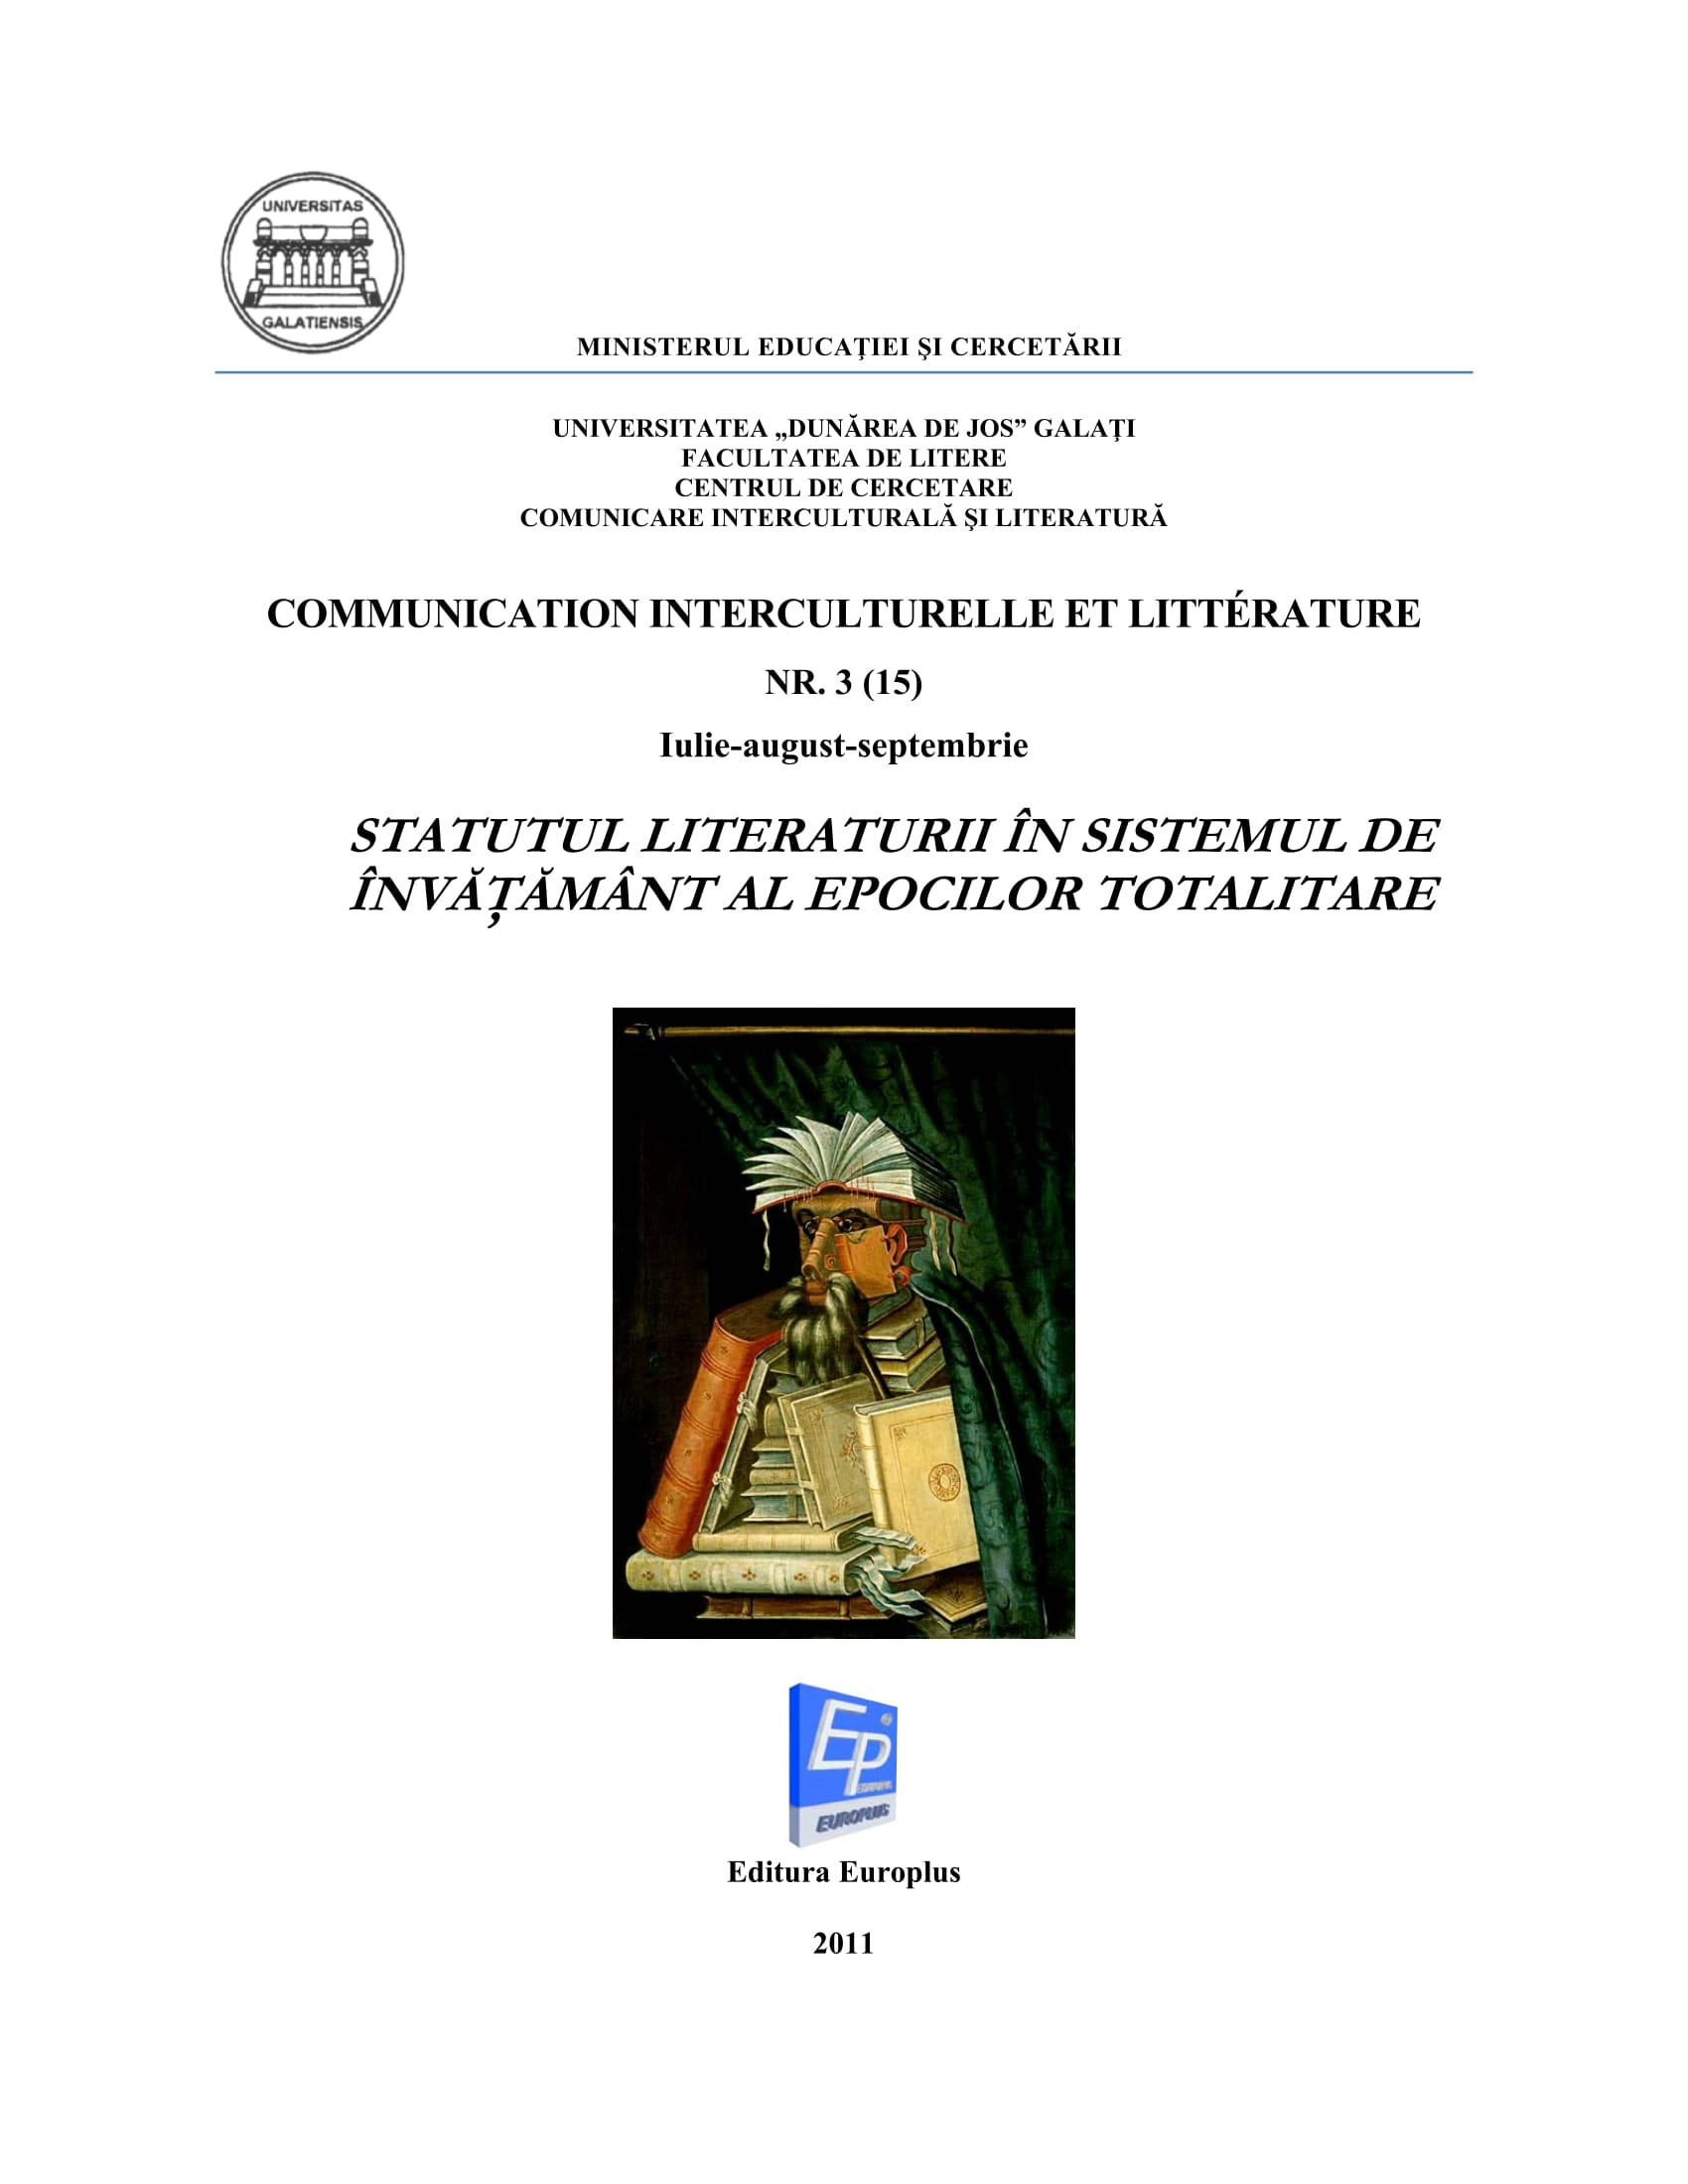 Vasile Lovinescu's Writings. Notes for a Total Hermeneutics